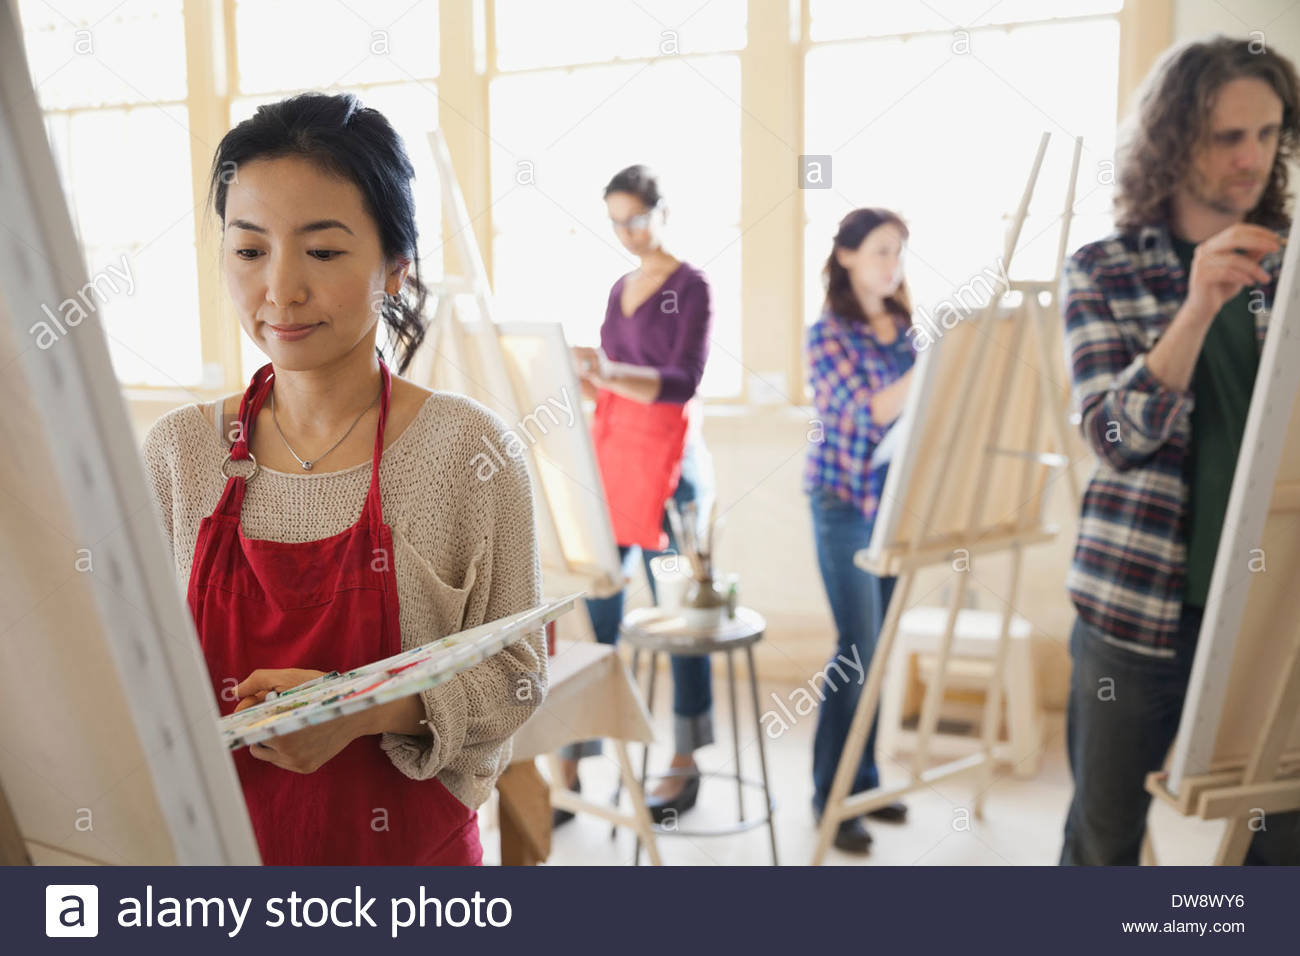 Female student painting in art class - Stock Image